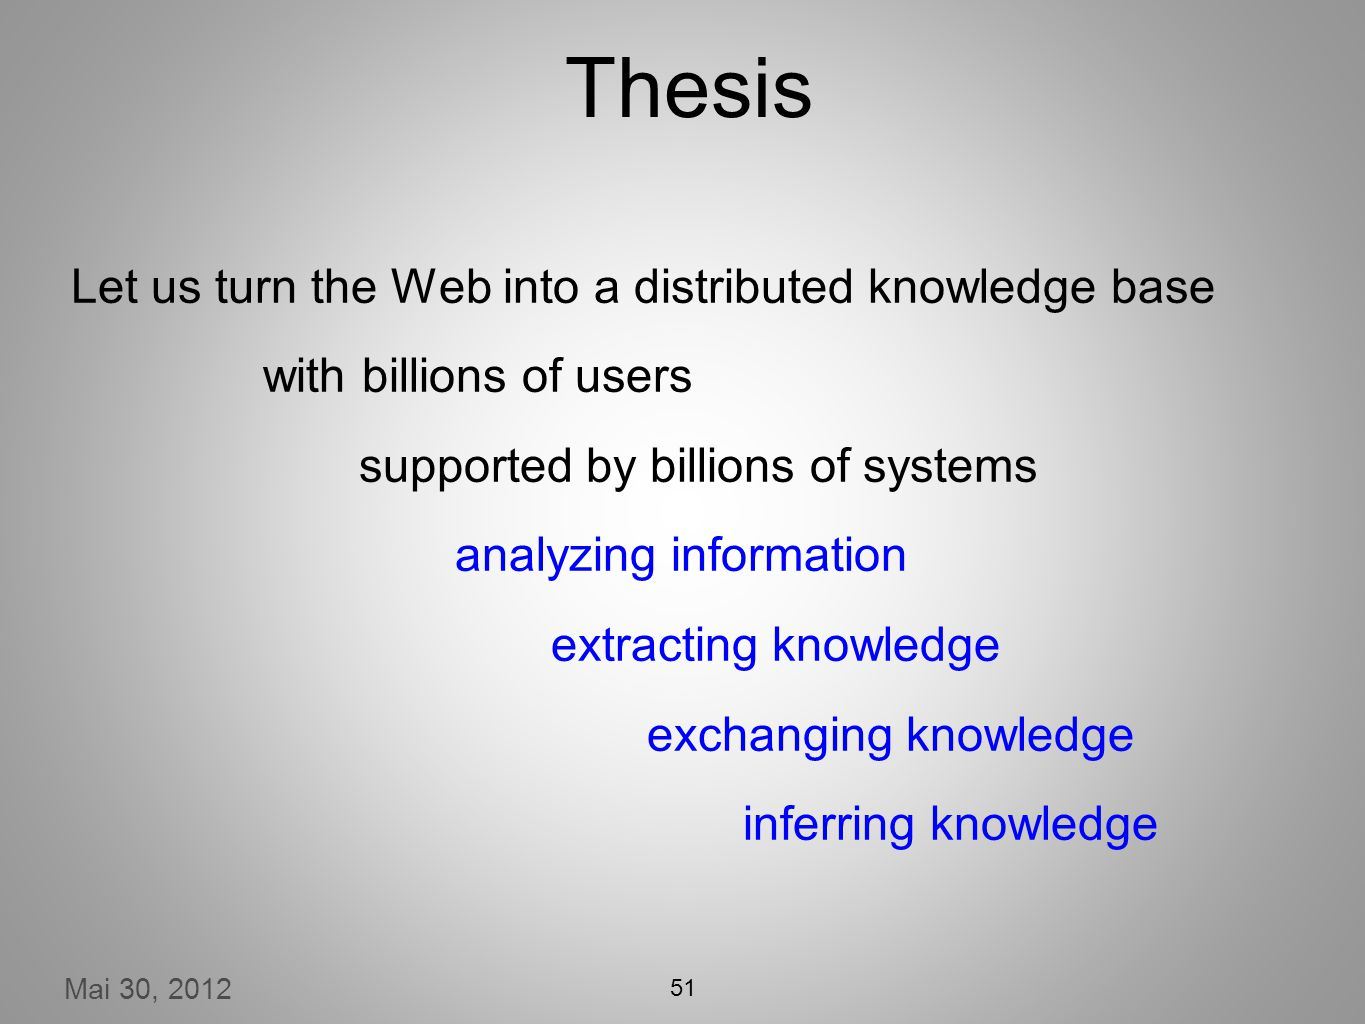 Mai 30, 2012 Thesis Let us turn the Web into a distributed knowledge base with billions of users supported by billions of systems analyzing information extracting knowledge exchanging knowledge inferring knowledge 51